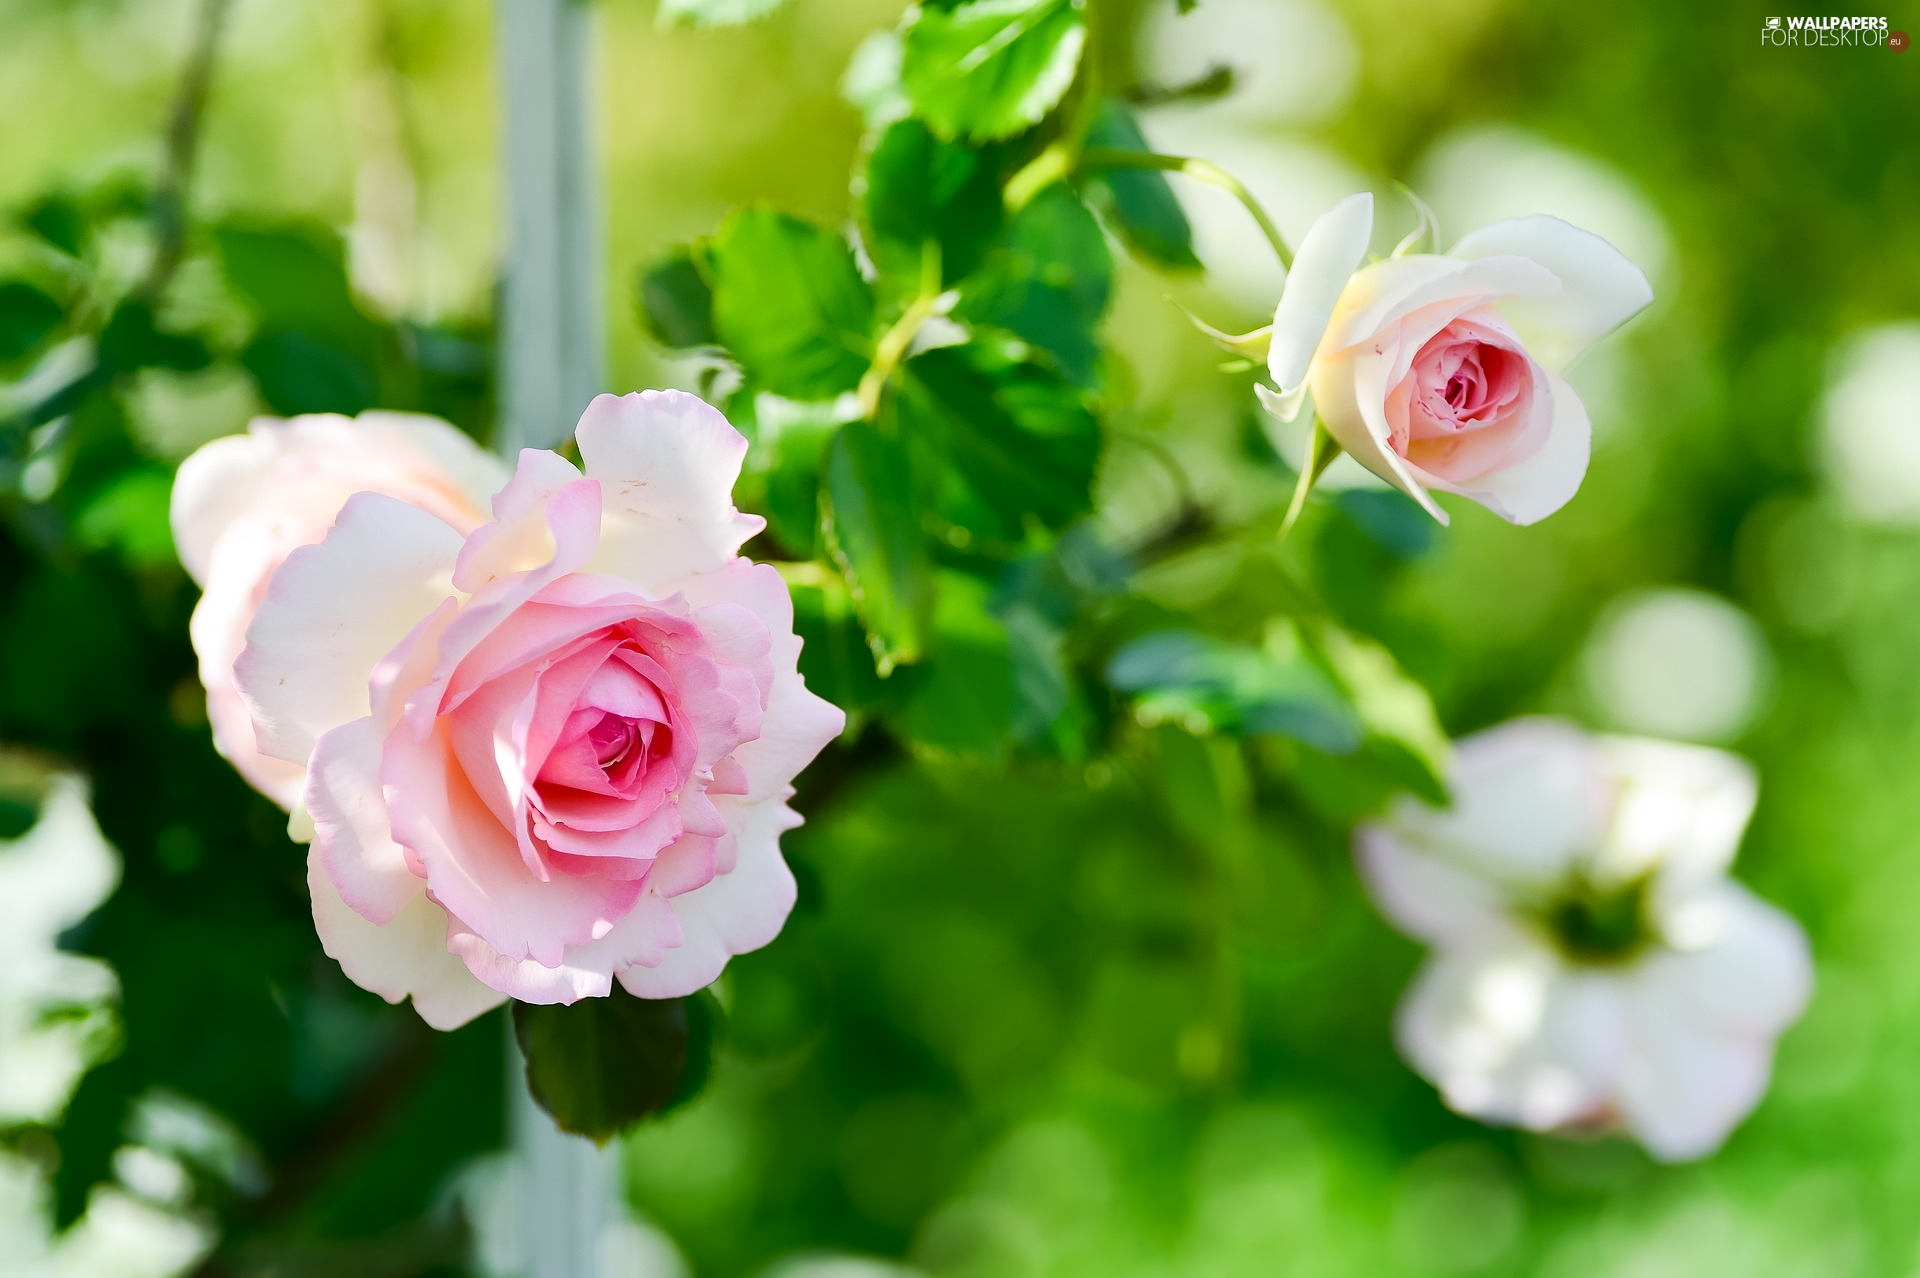 bud, white and pink, roses